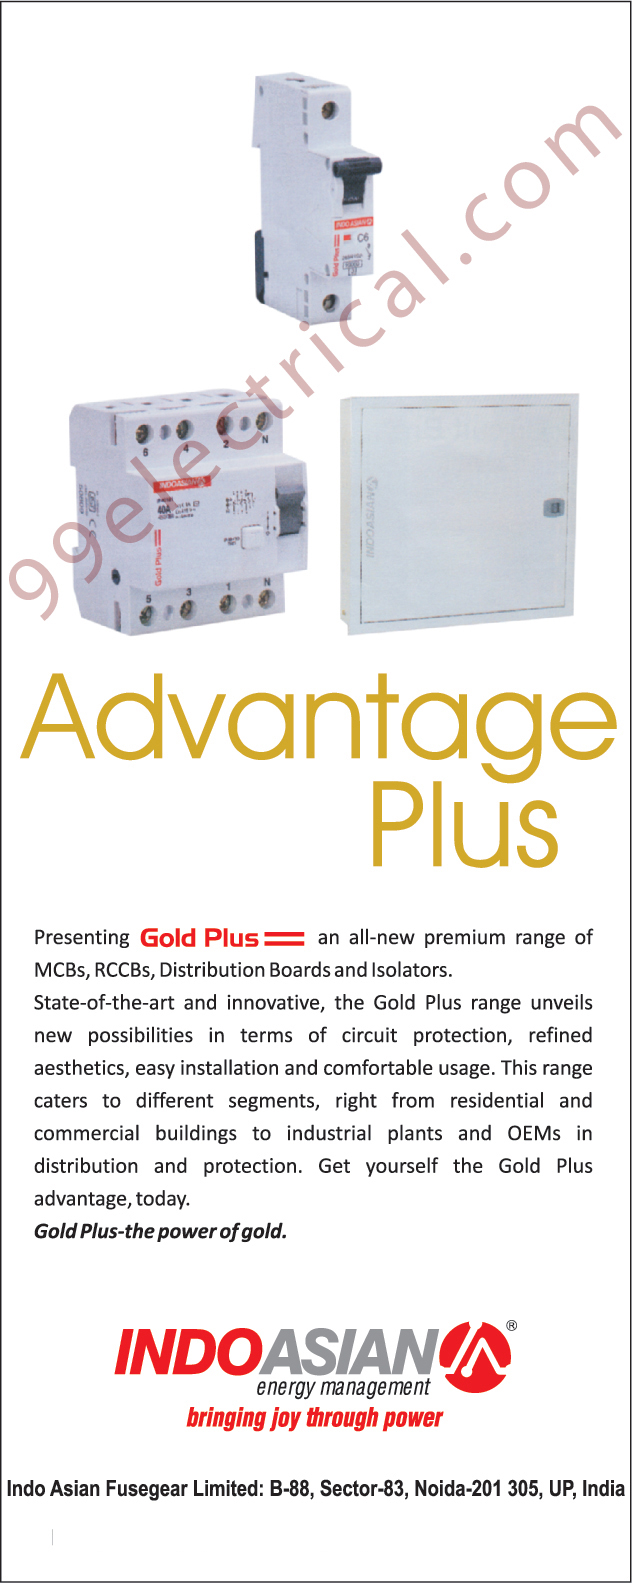 MCB, RCCB, Distribution Boards, Isolators,Electrical Products, Electrical Protection System, Connection System, Customized Panels, Wiring Devices, Electrical Power System Products, Changeover Switches, Switch Disconnector Fuse, Fusegear